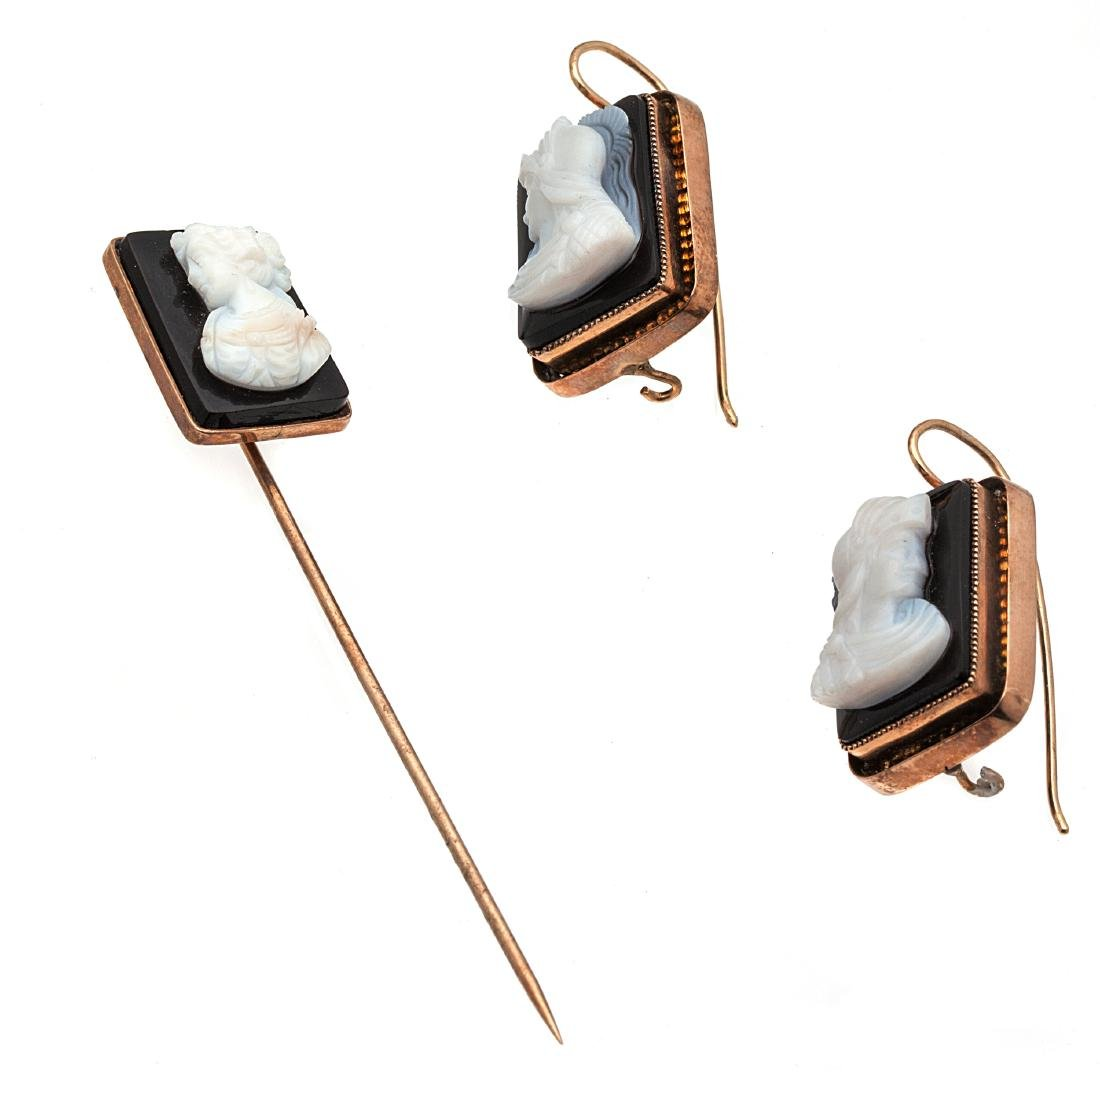 A collection of onyx cameo, rose gold jewelry